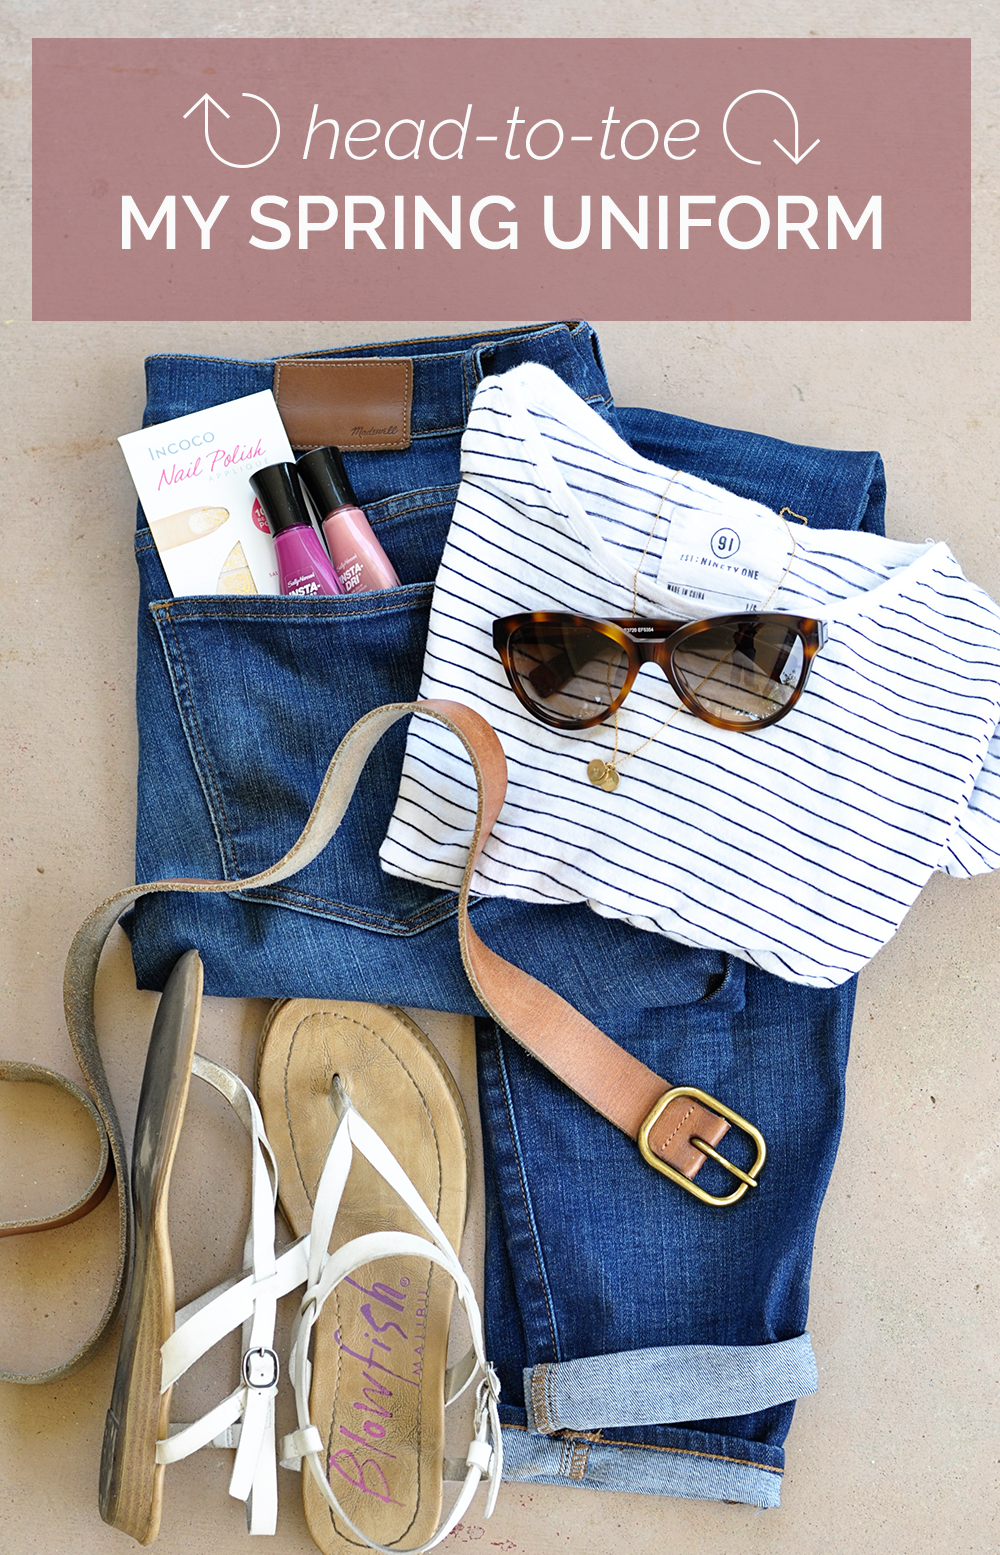 head to toe: my spring uniform of the perfect tee, sandals, and a delicate gold necklace I adore